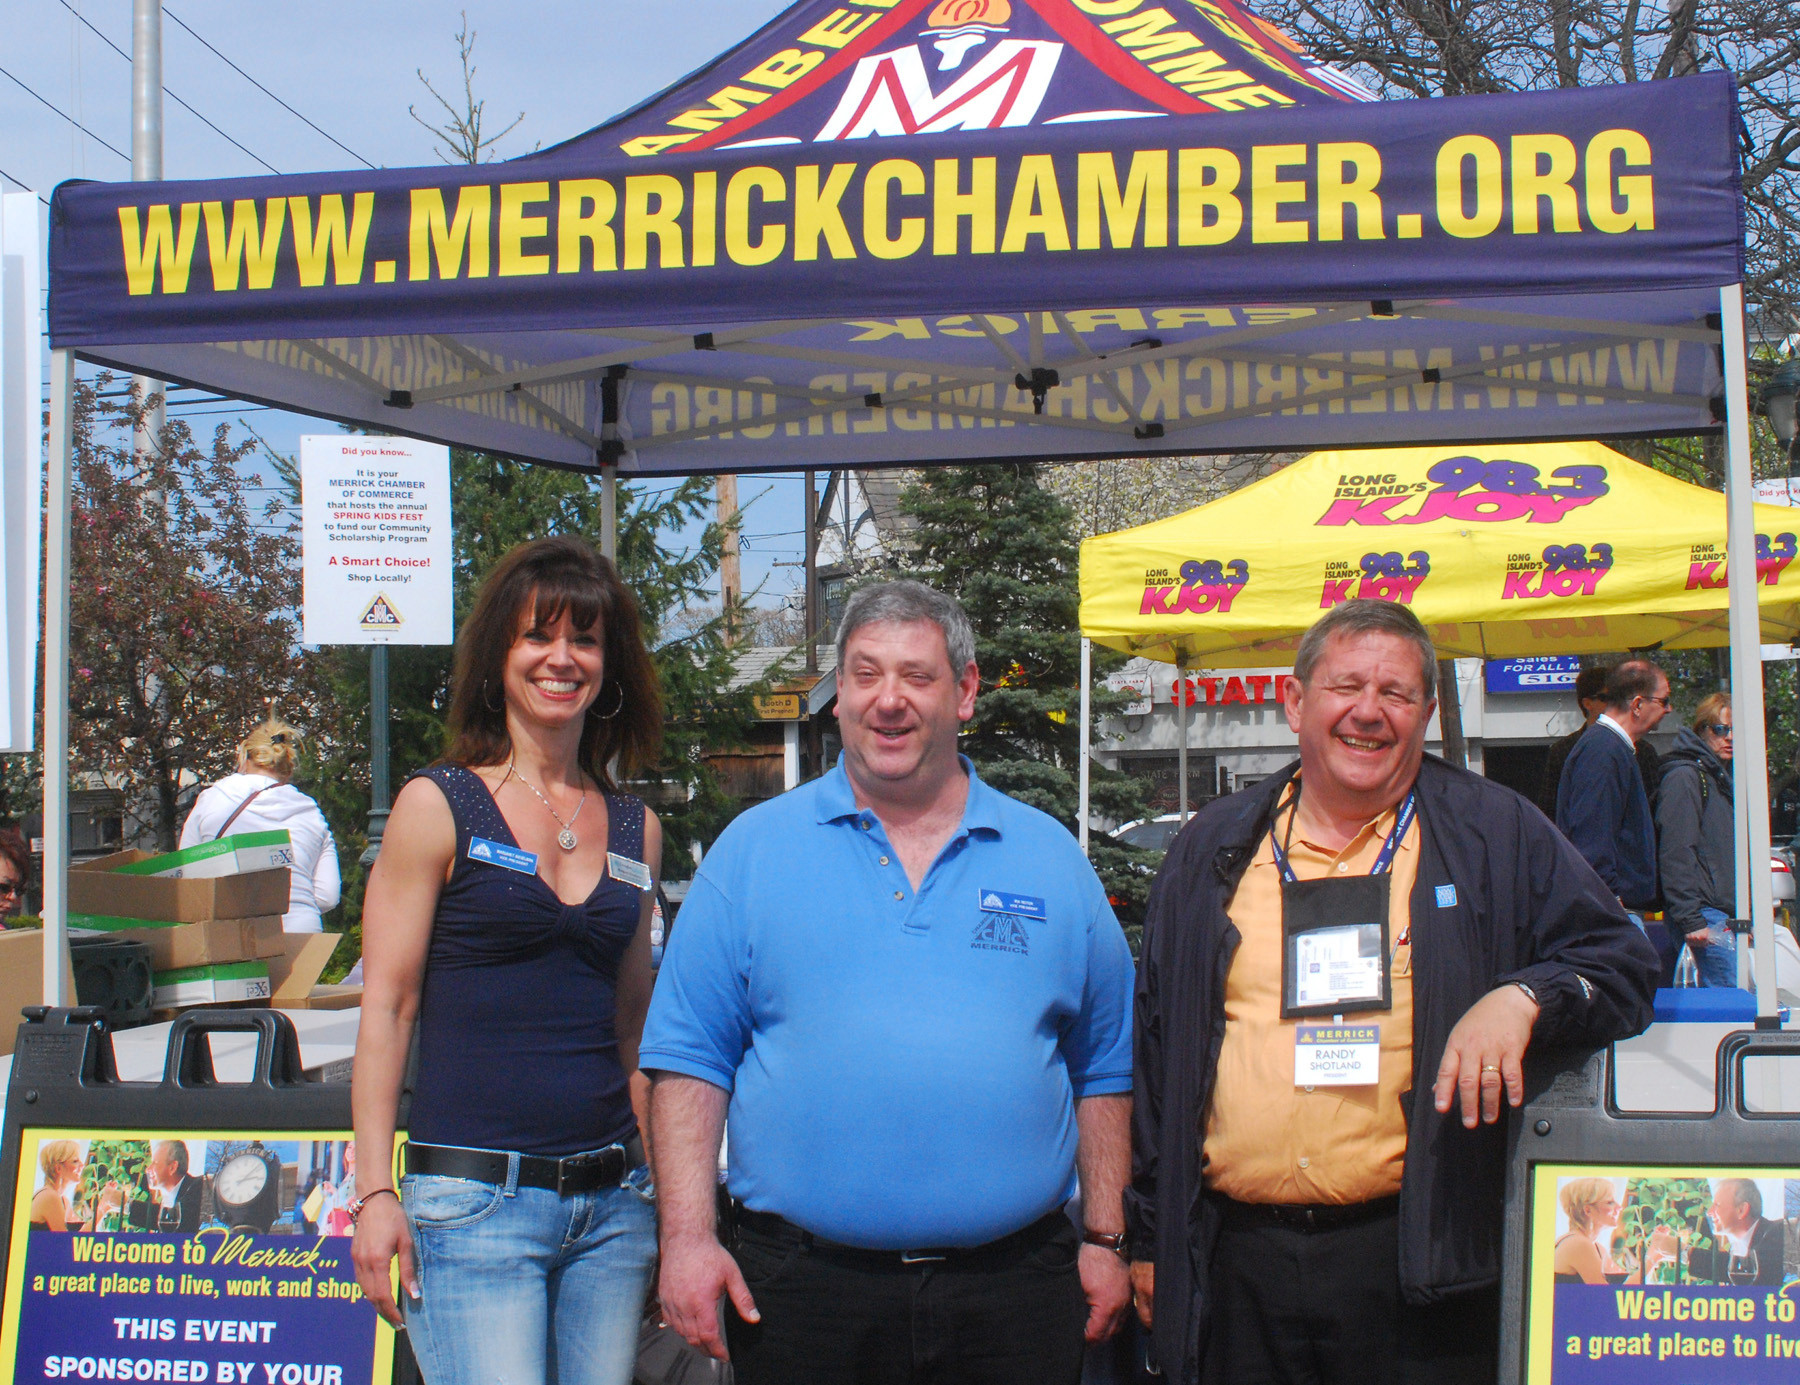 Margaret Biegelman, Ira Reiter and Randy Shotland of the Merrick Chamber of Commerce welcomed visitors to the festival.